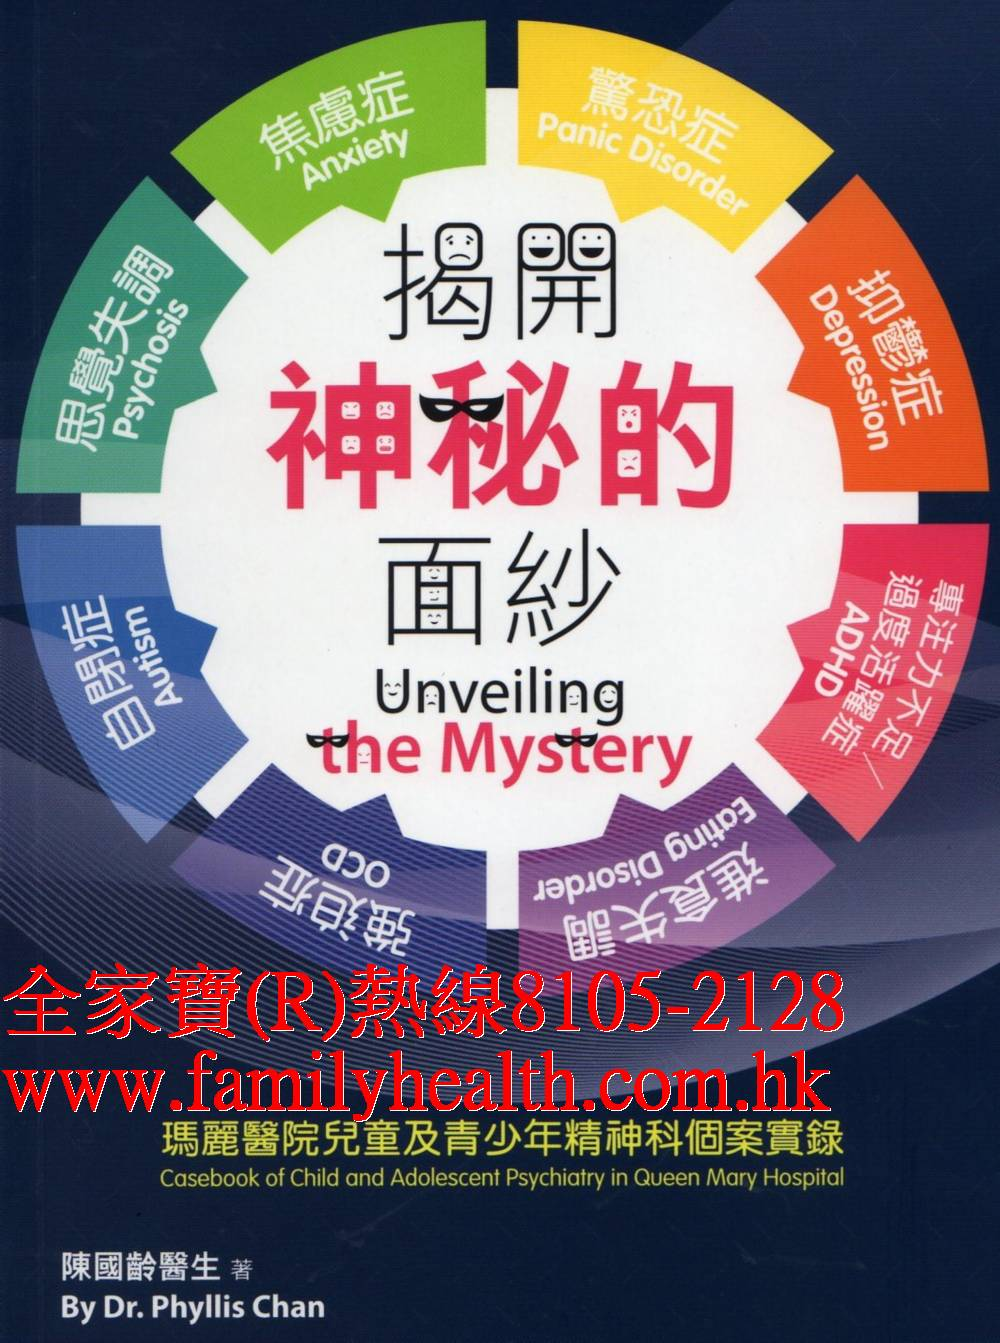 http://www.familyhealth.com.hk/files/full/964_0.jpg